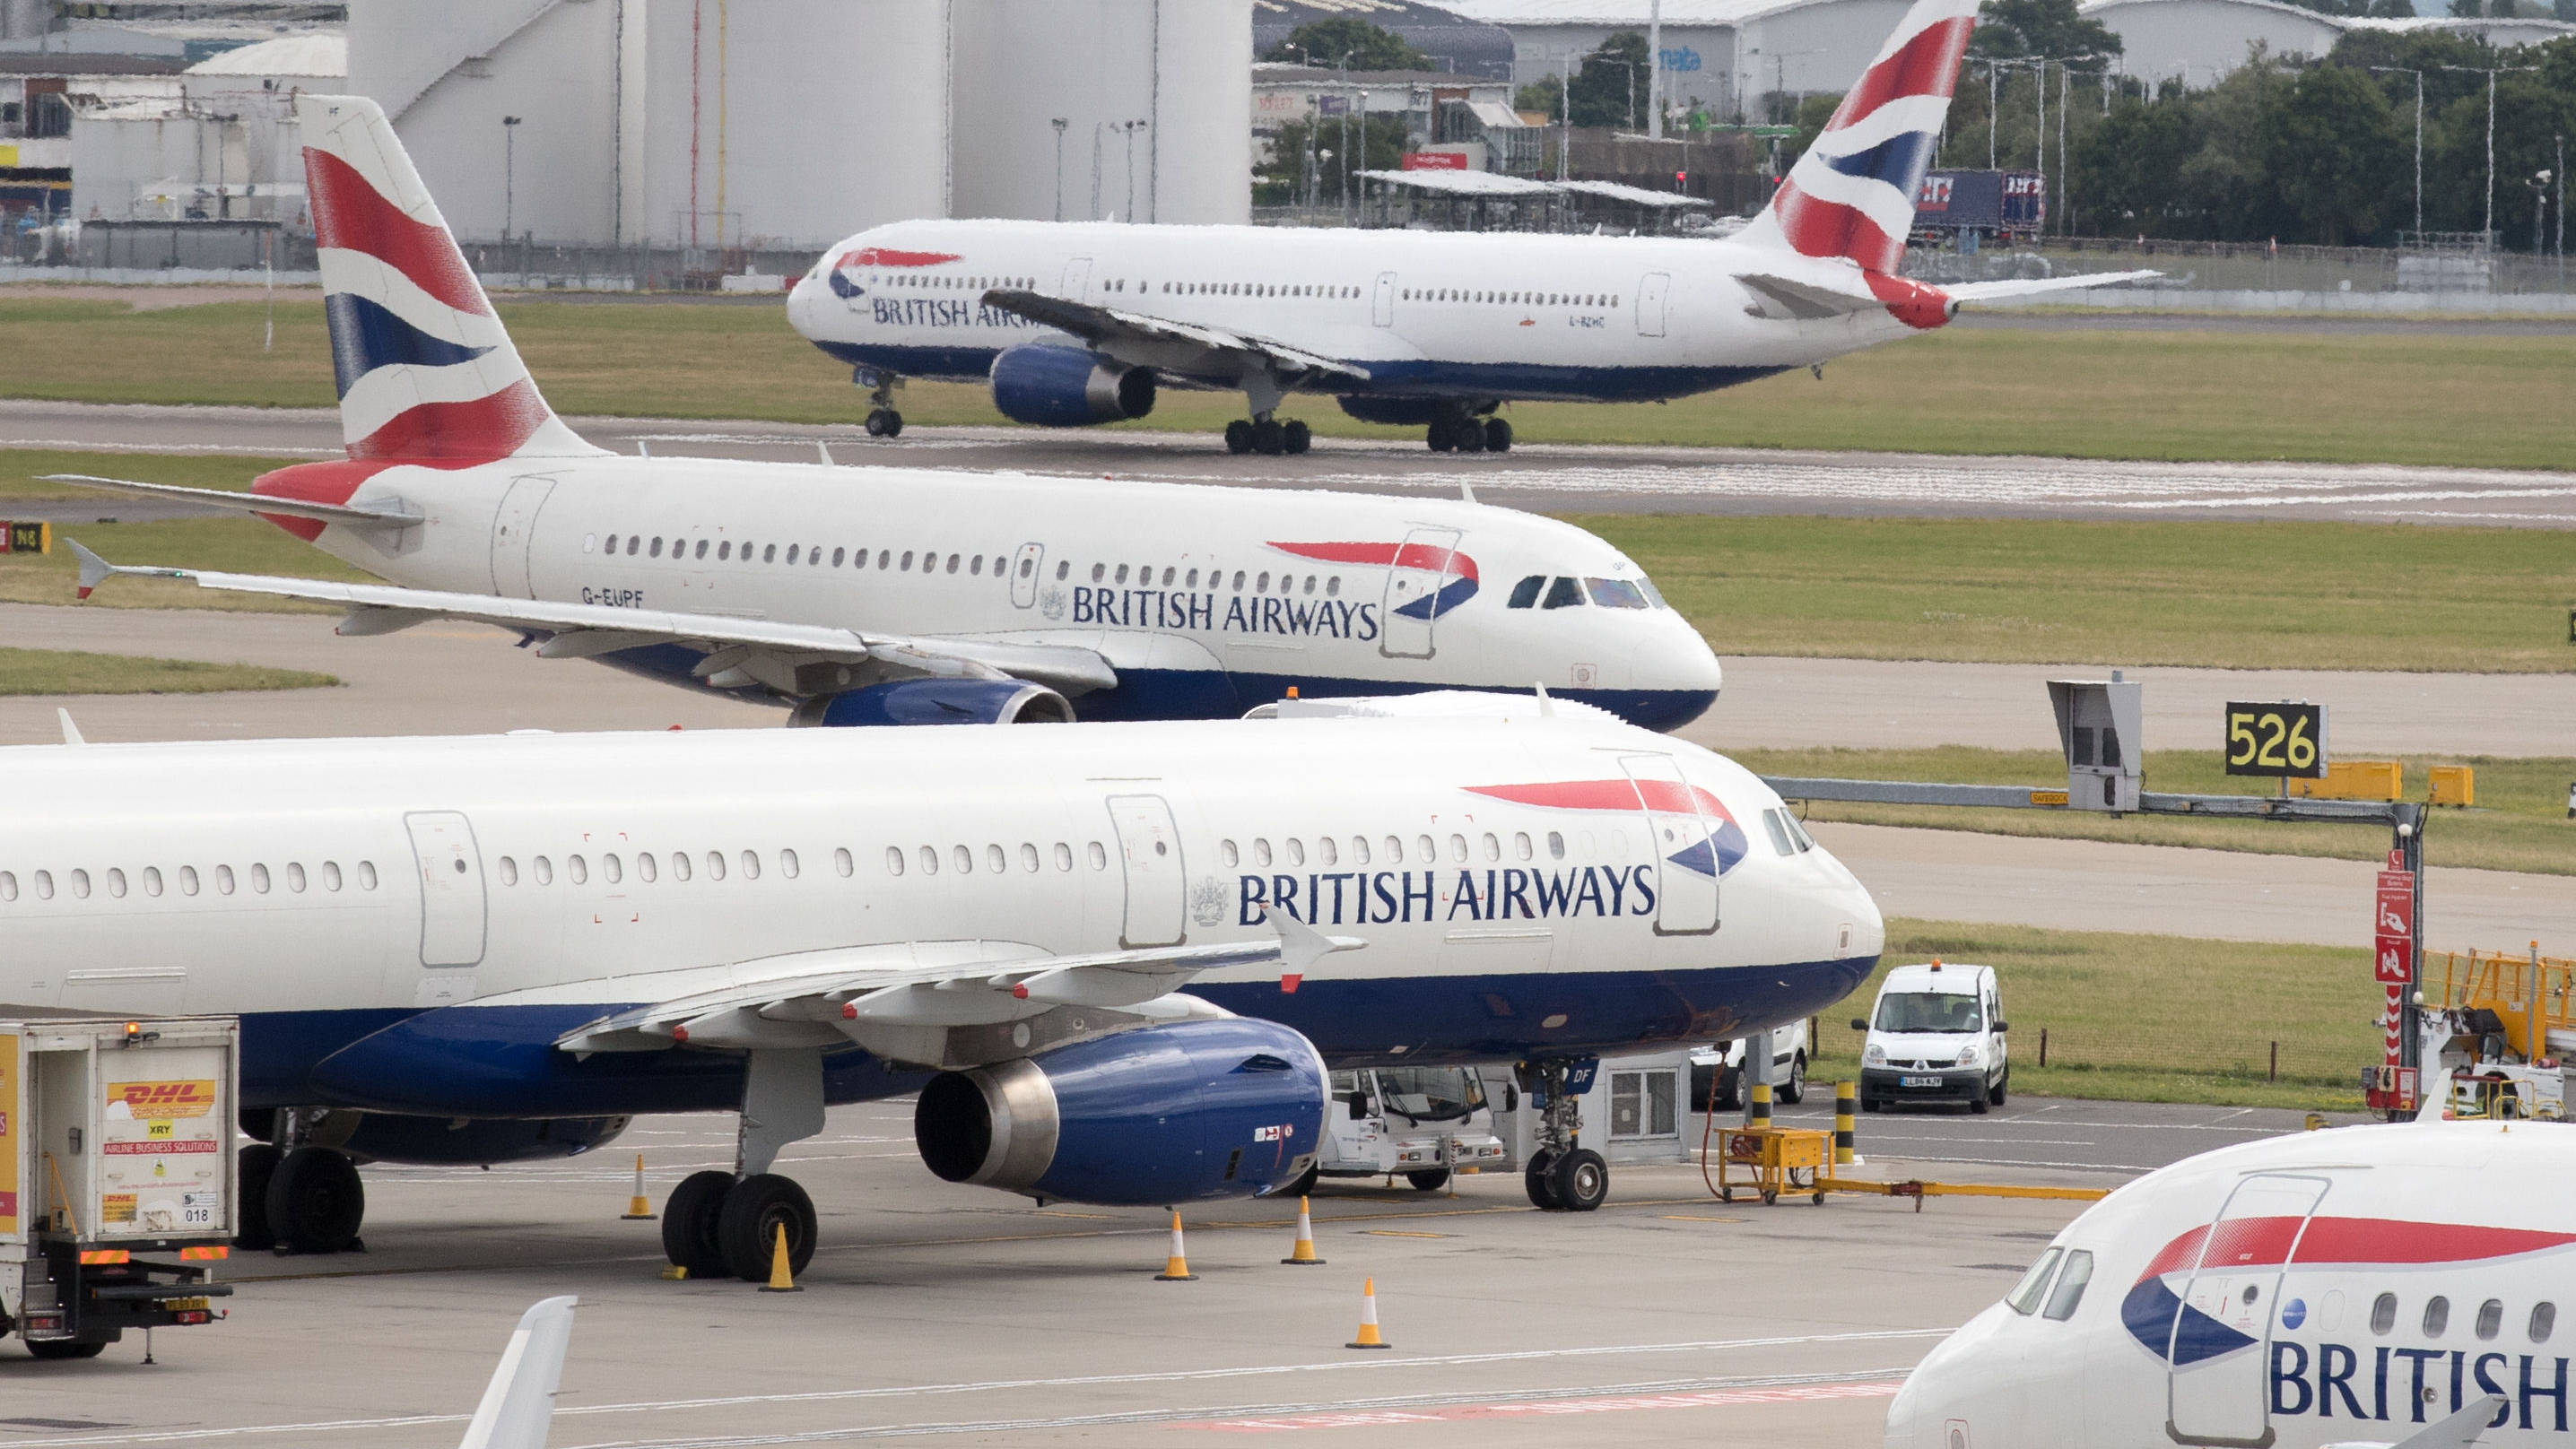 British Airways Has Lost 150, 000 Bags So Far This Year